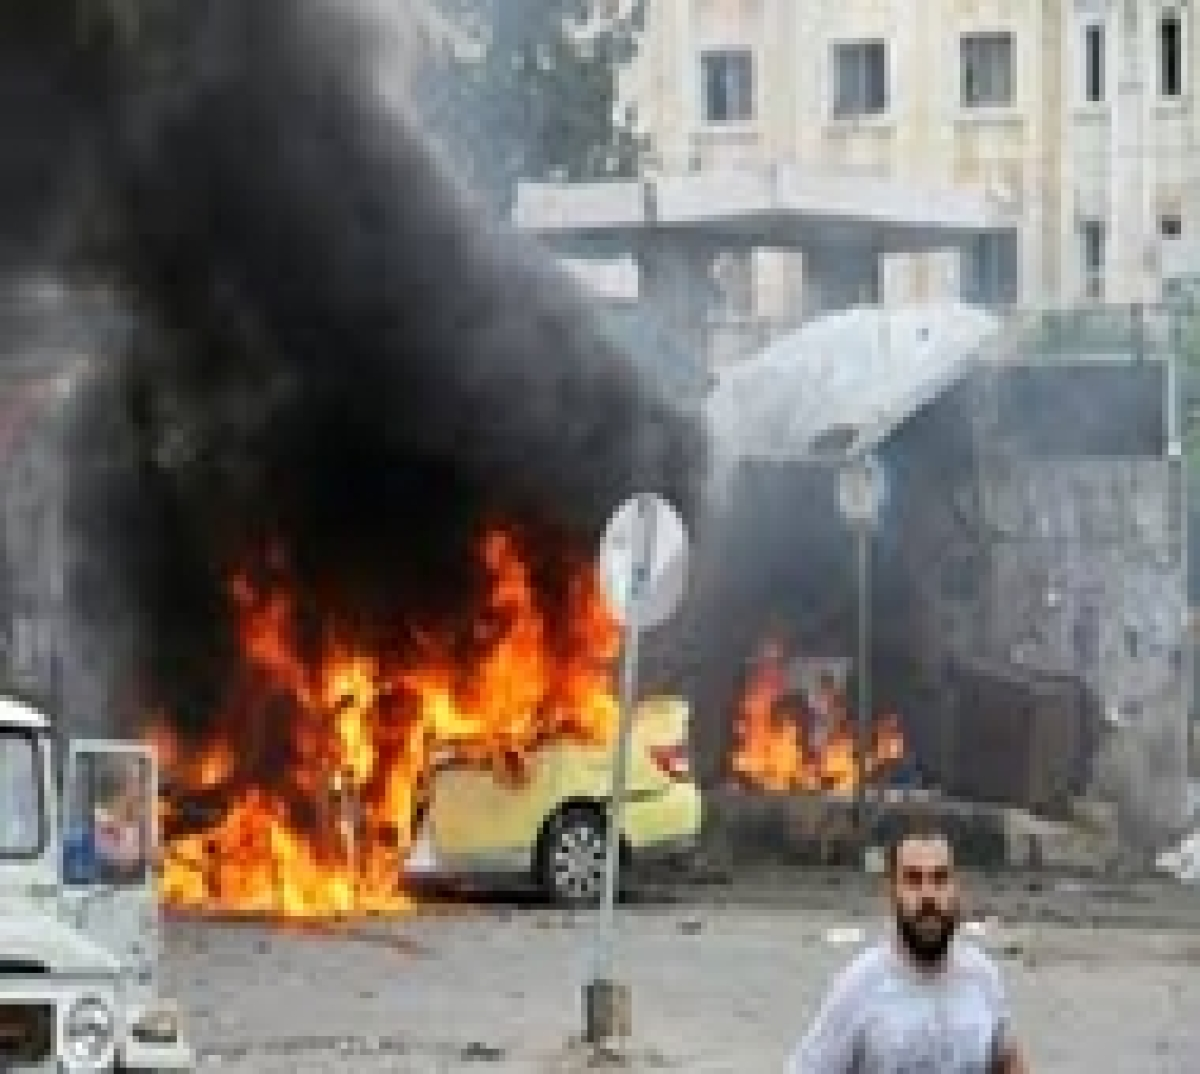 Bombs kill more than 120 in Syria regime bastions